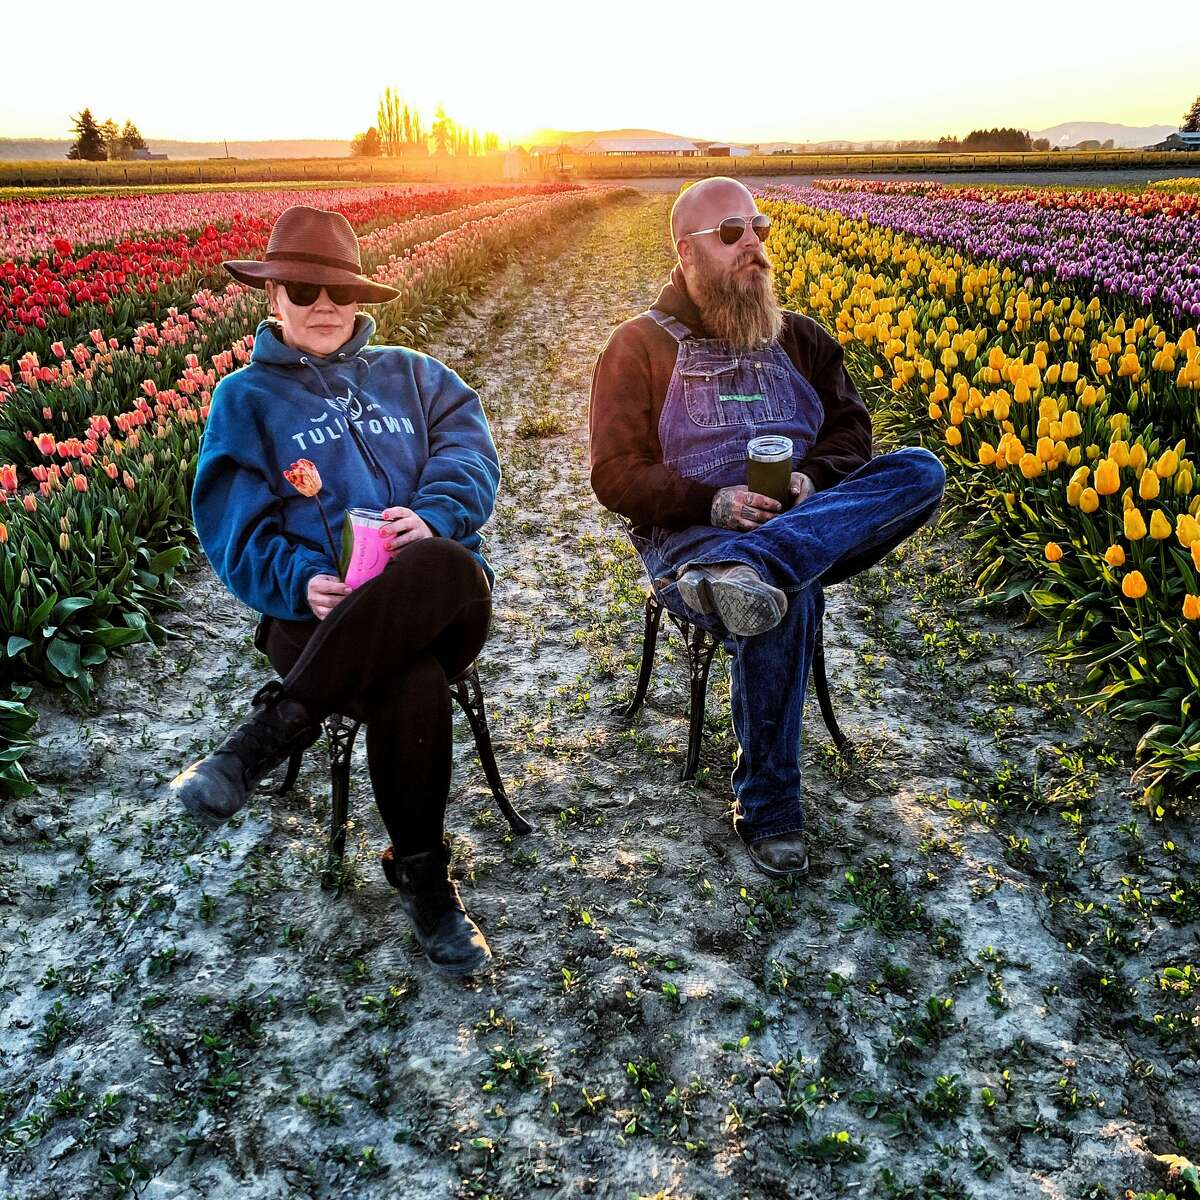 The Tulip Town team enjoys their tulip fields. Click through the gallery to see more images of tulip season in the Skagit Valley. >>>